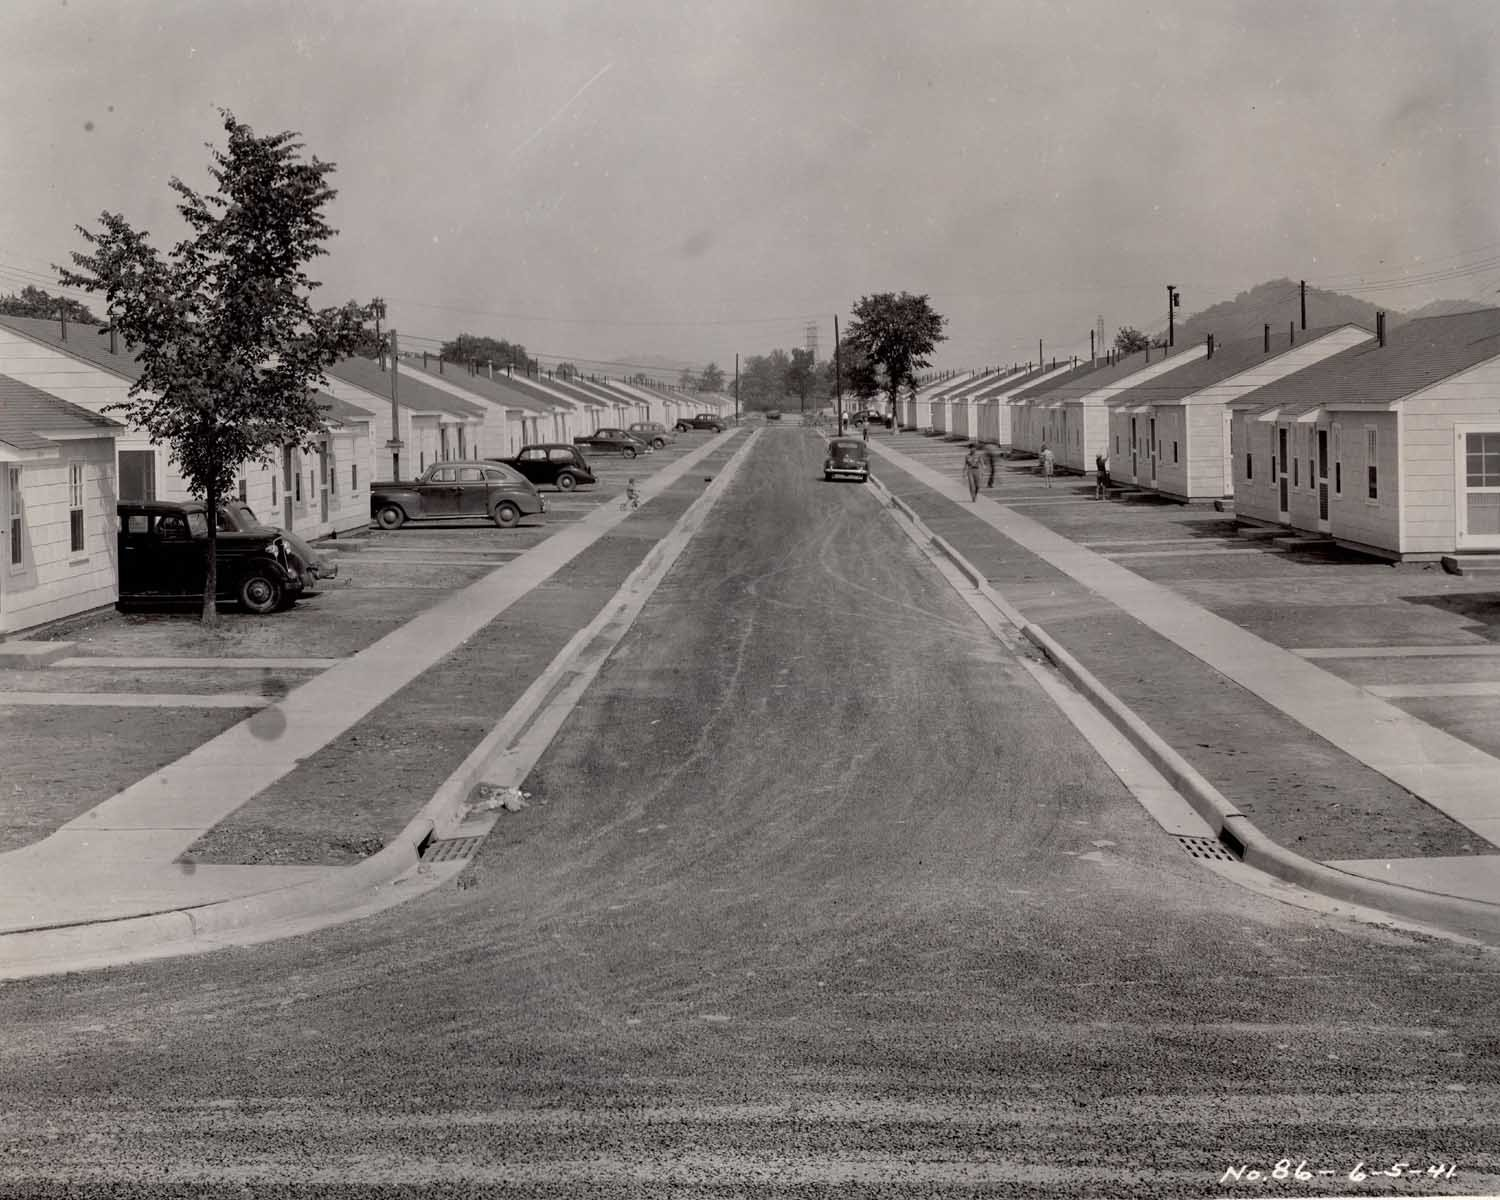 Ordnance Park Street View. Though little can be seen here, the lawns were in fact seeded as part of the NoY-4488 contract.